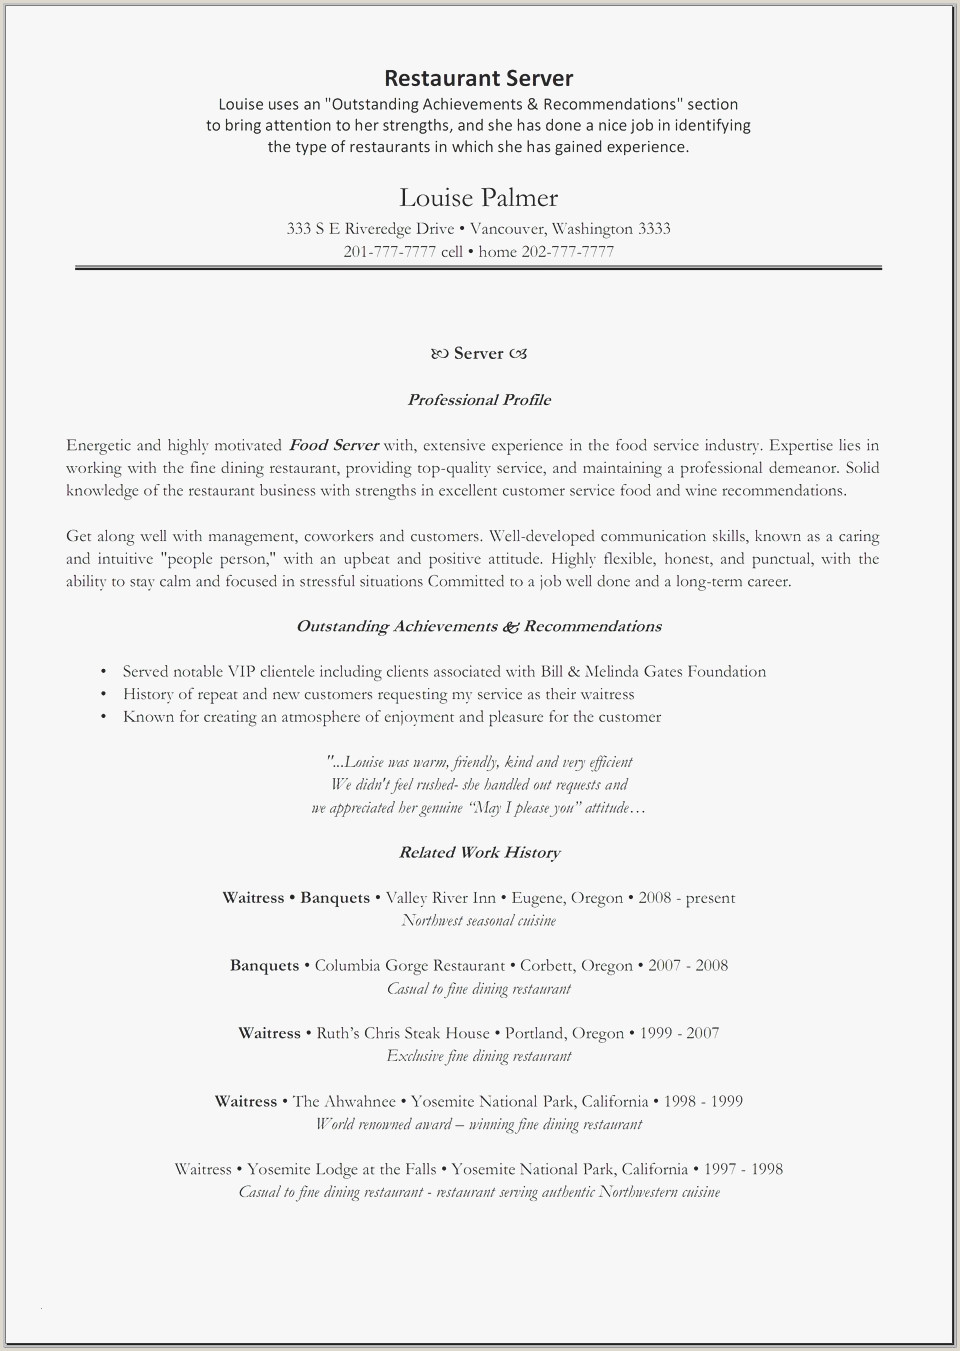 Waitress Job Resume Cover Letter for Restaurant Server Awesome New Sample Resume